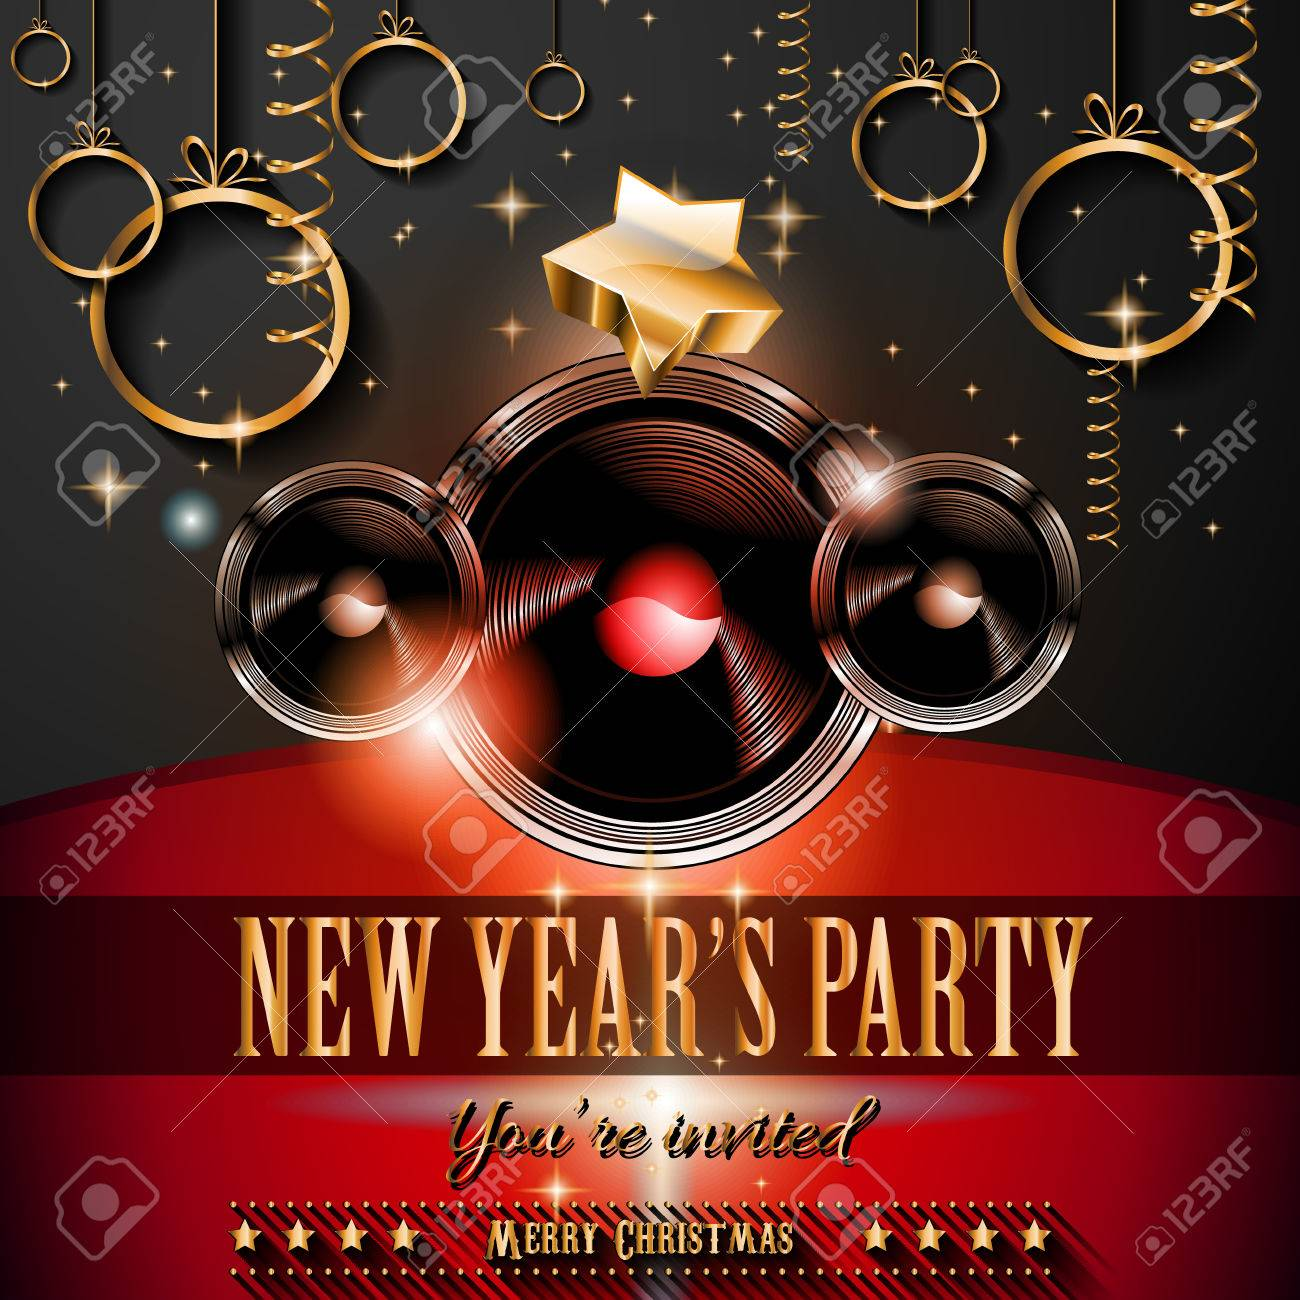 new year s party flyer design for nigh clubs event 2015 new year s party flyer design for nigh clubs event festive christmas themed elements and